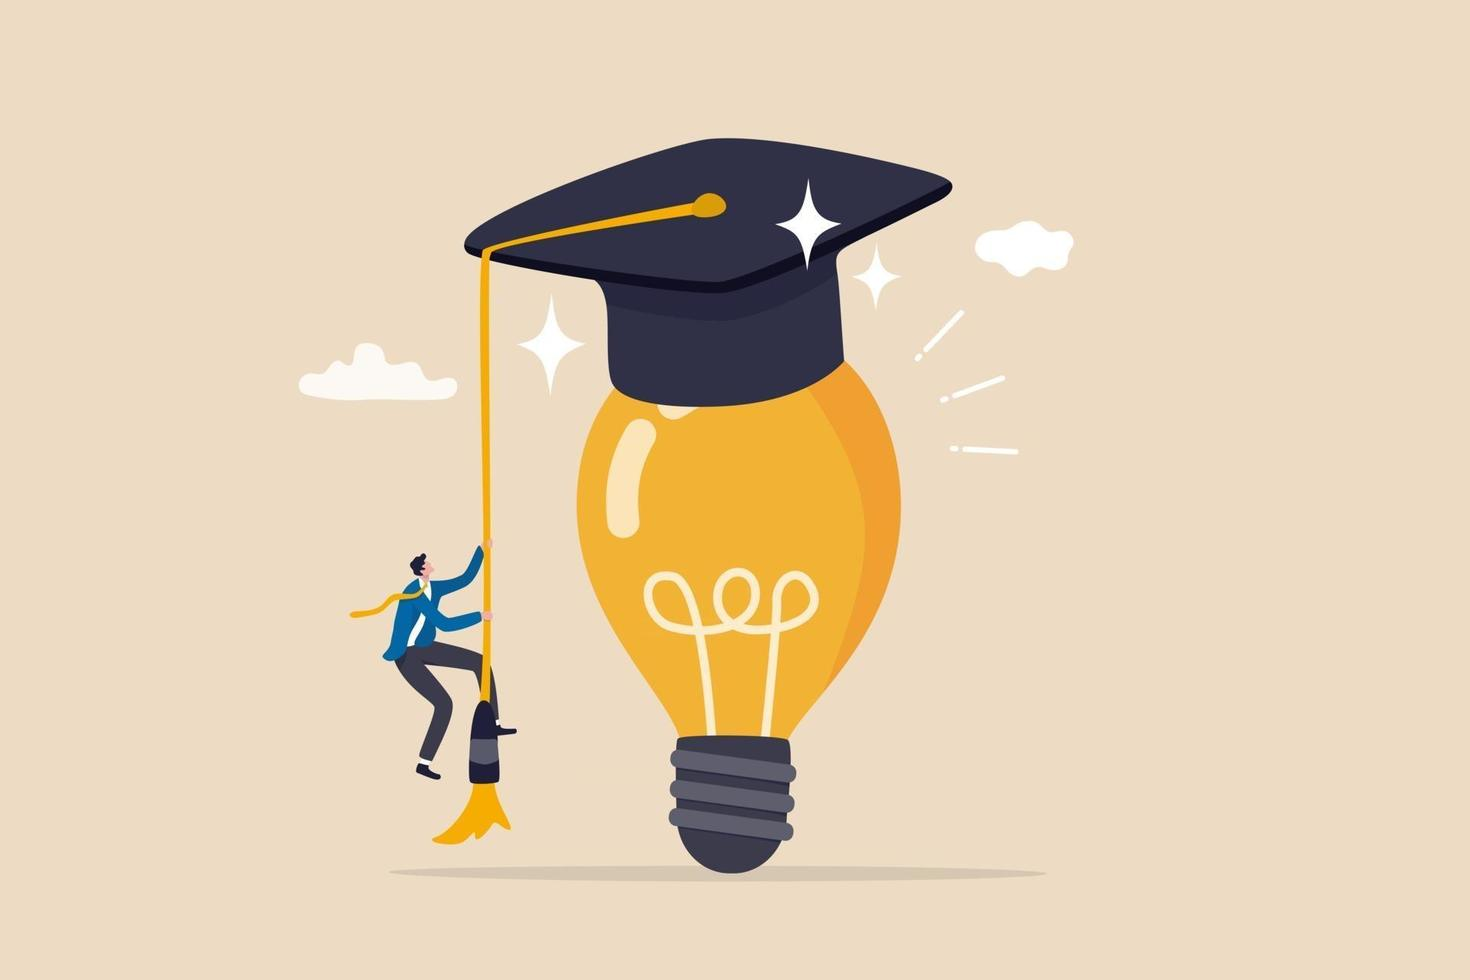 Education or academic help create business idea, skill and knowledge empower creativity concept, smart intelligence business man climb up bright light bulb idea waring mortarboard graduation cap. vector